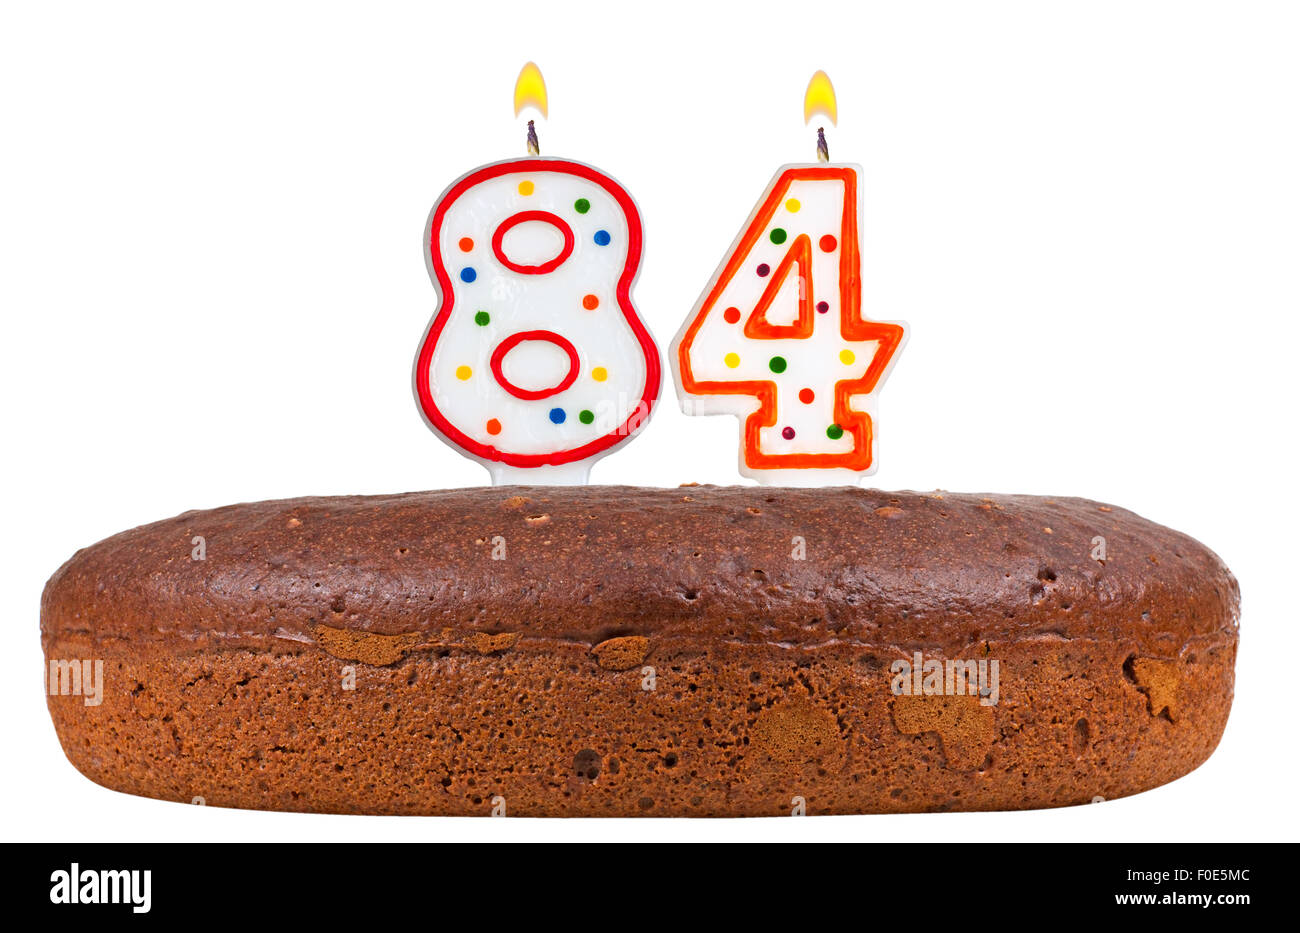 Birthday Cake With Candles Number Eighty Four Stock Photo 86363660